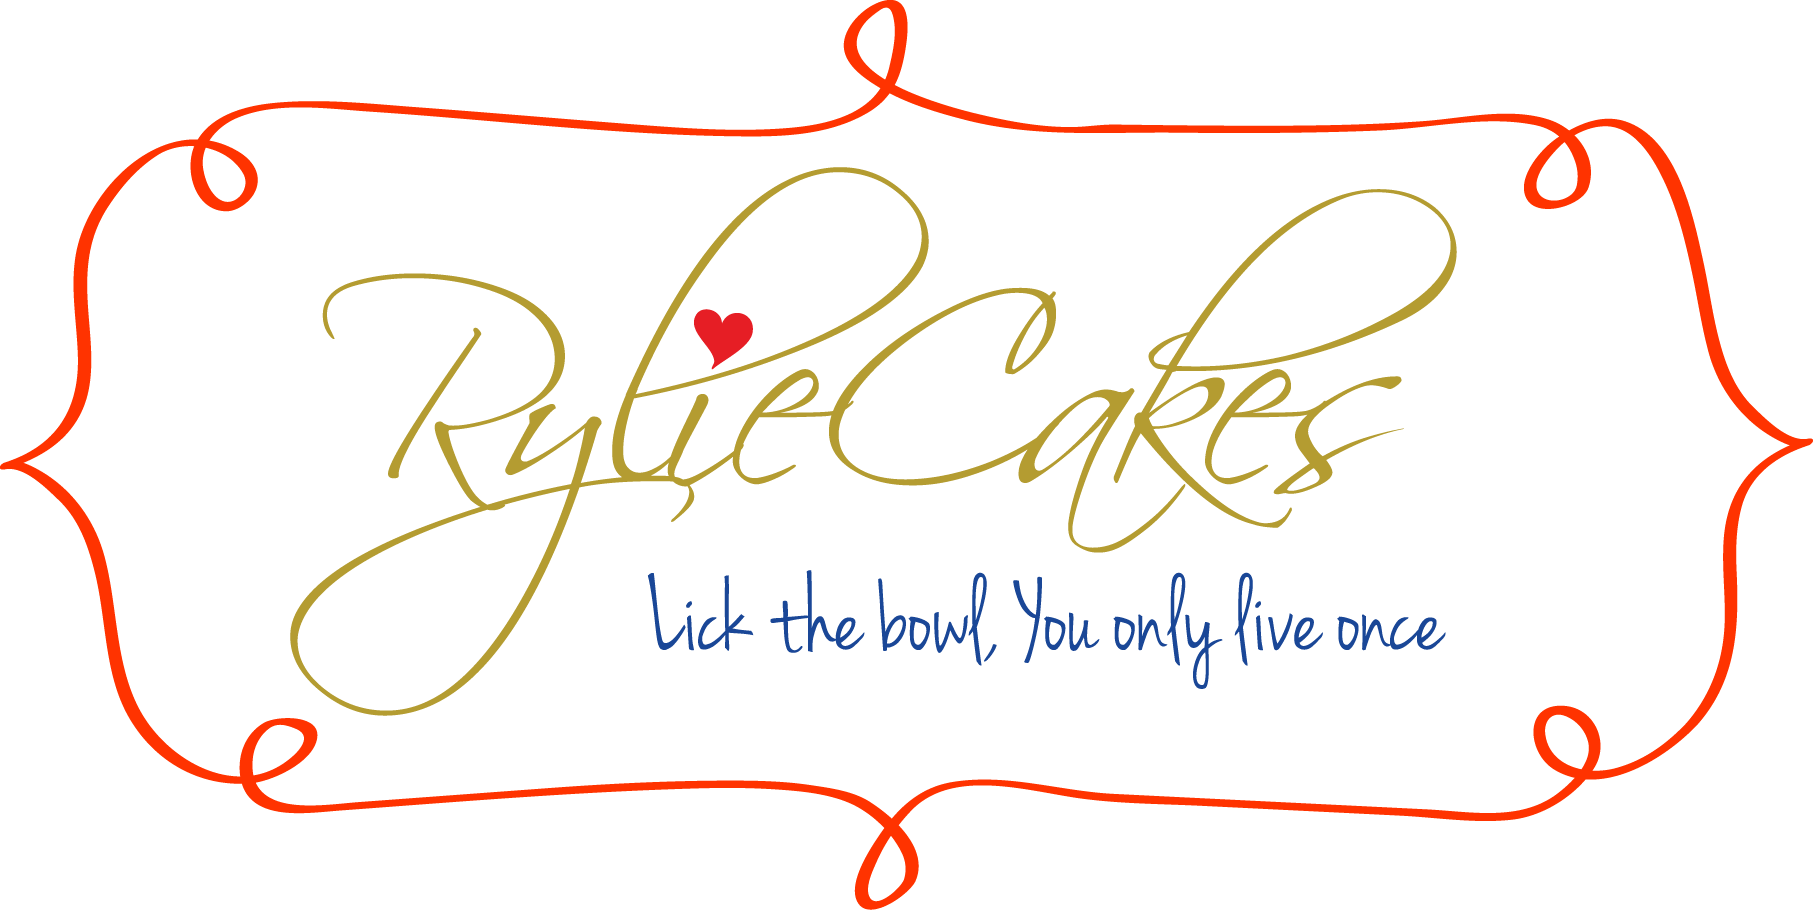 Rylie Cakes